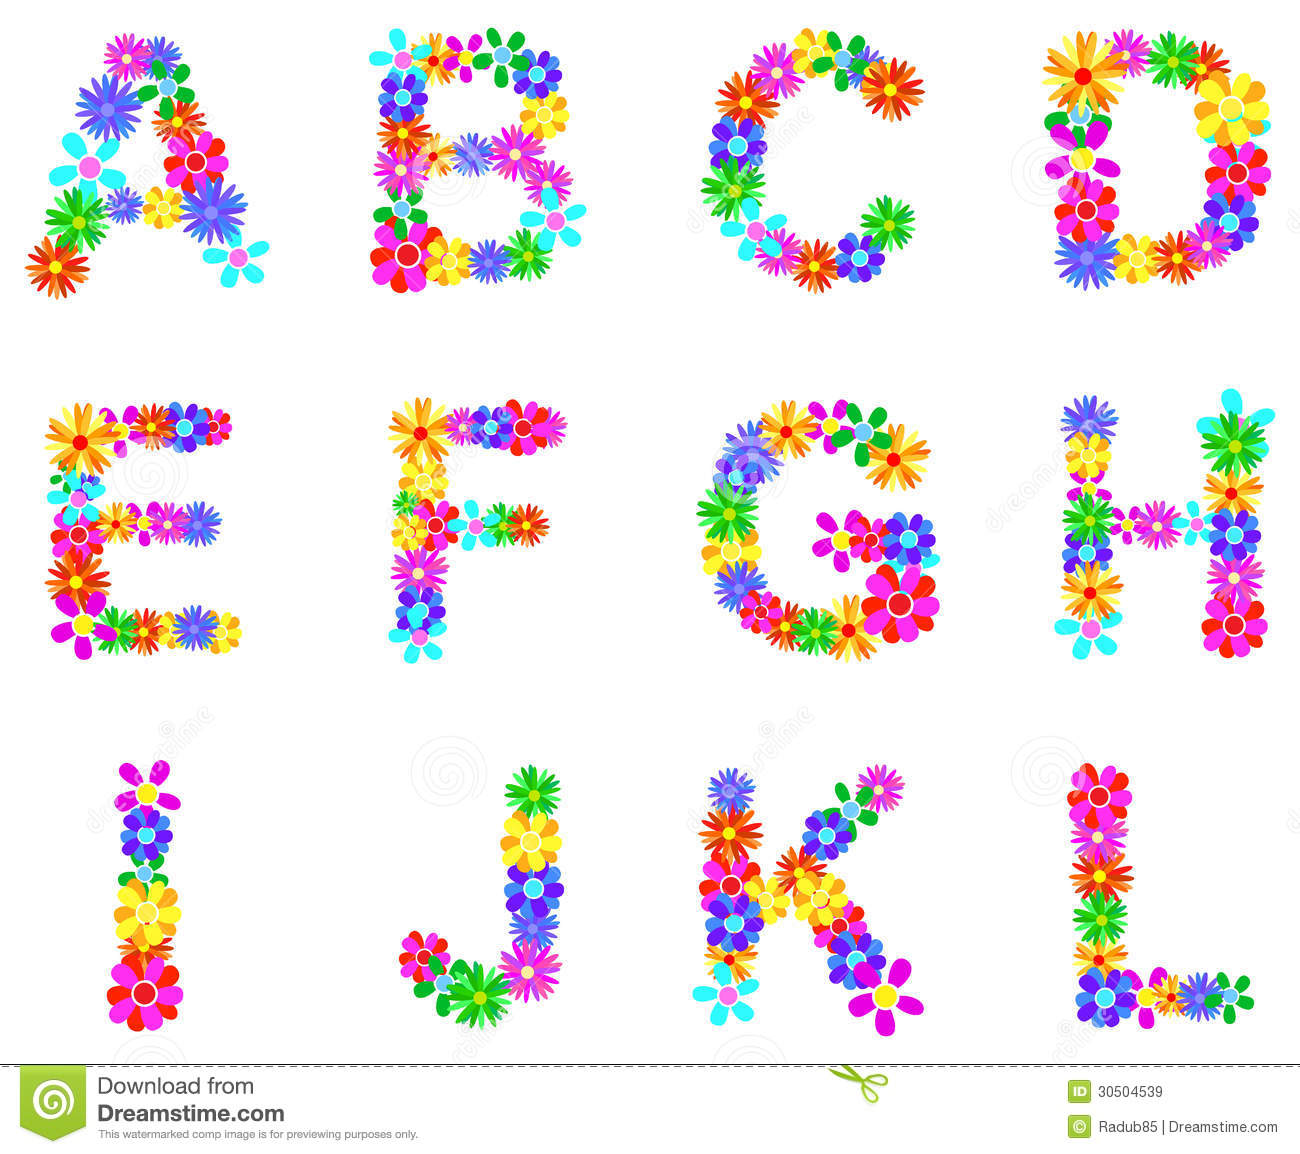 Free Flower Alphabet Clipart Intended For Your Inspiration